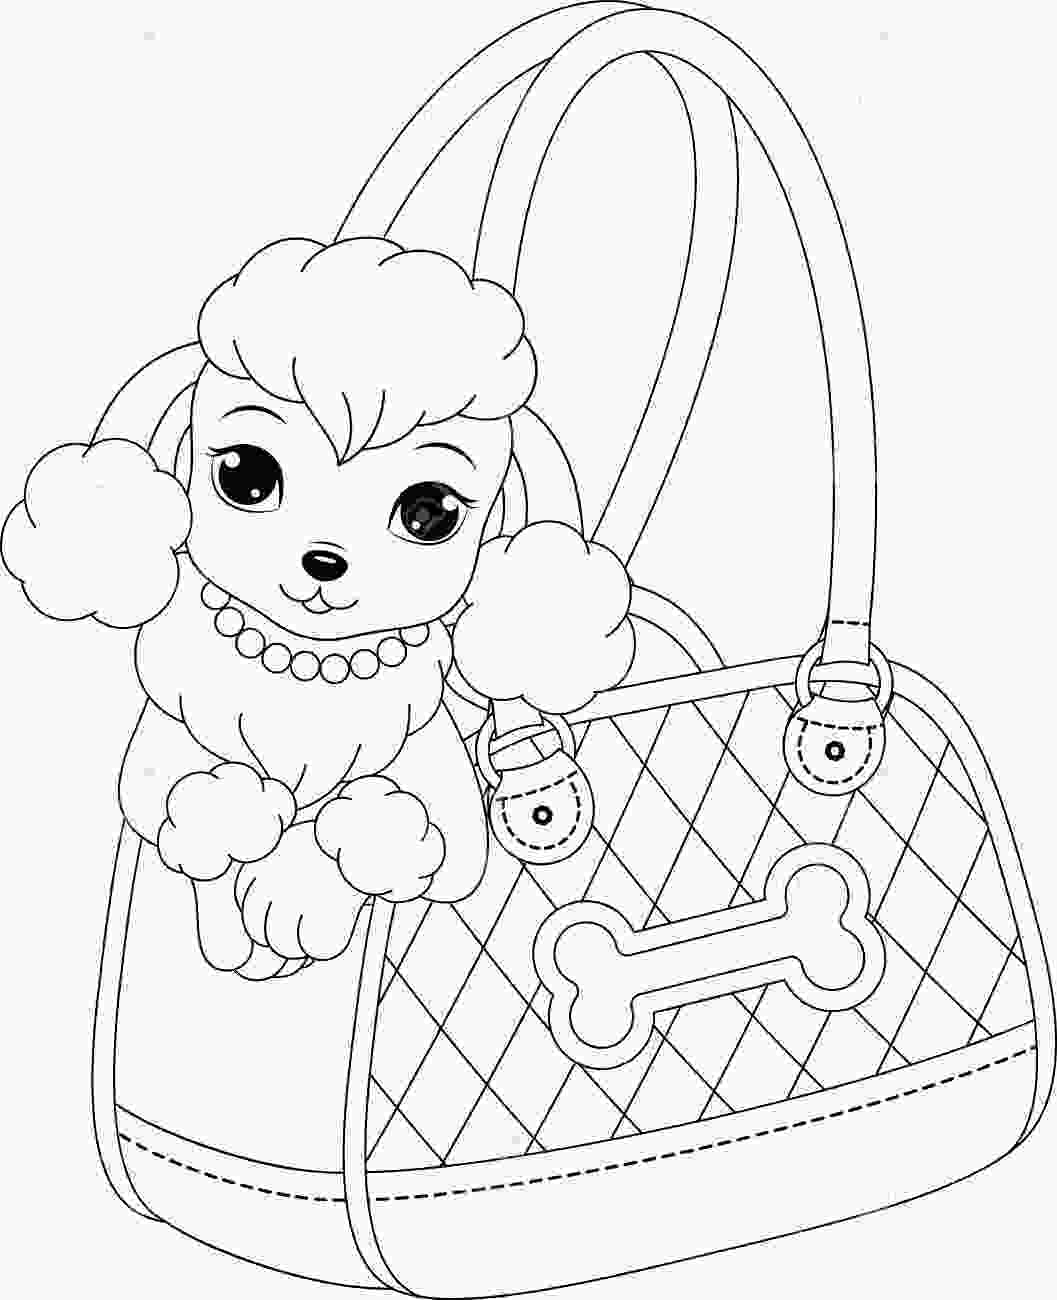 paris coloring pictures free printable paris coloring pages at getcoloringscom